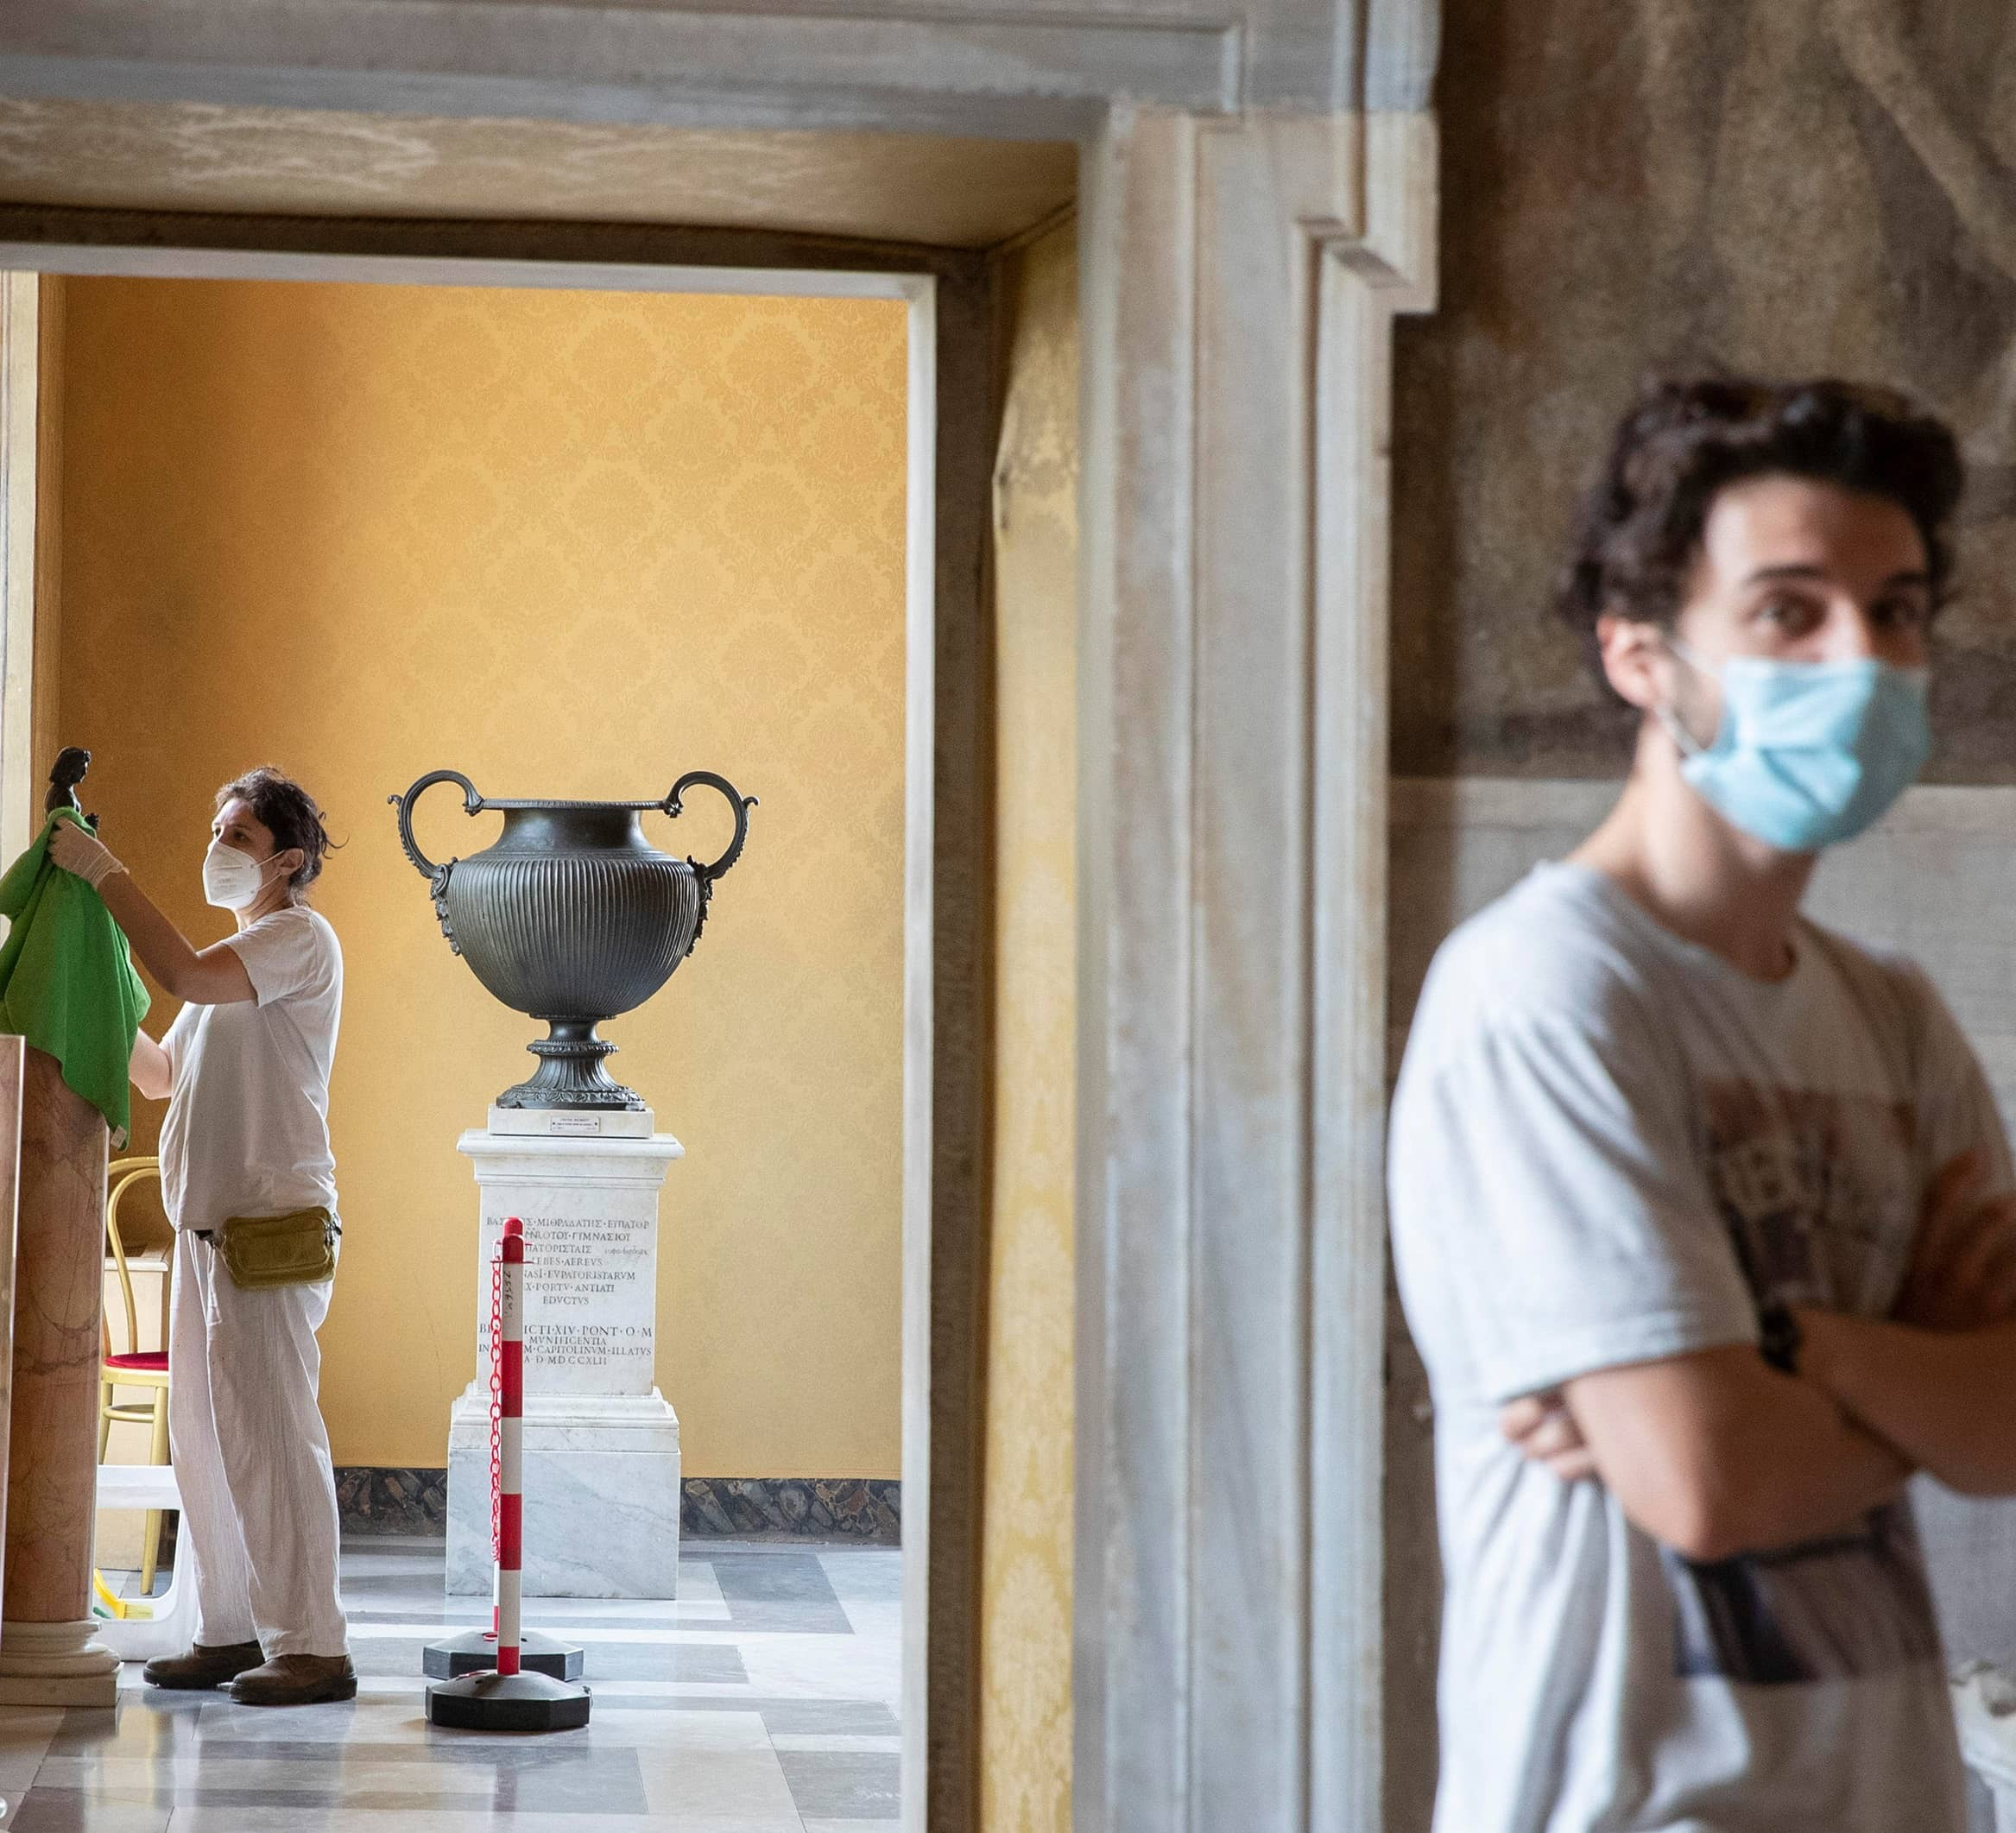 UN AGENCY WARNS PANDEMIC COULD KILL 1 IN 8 MUSEUMS WORLDWIDE